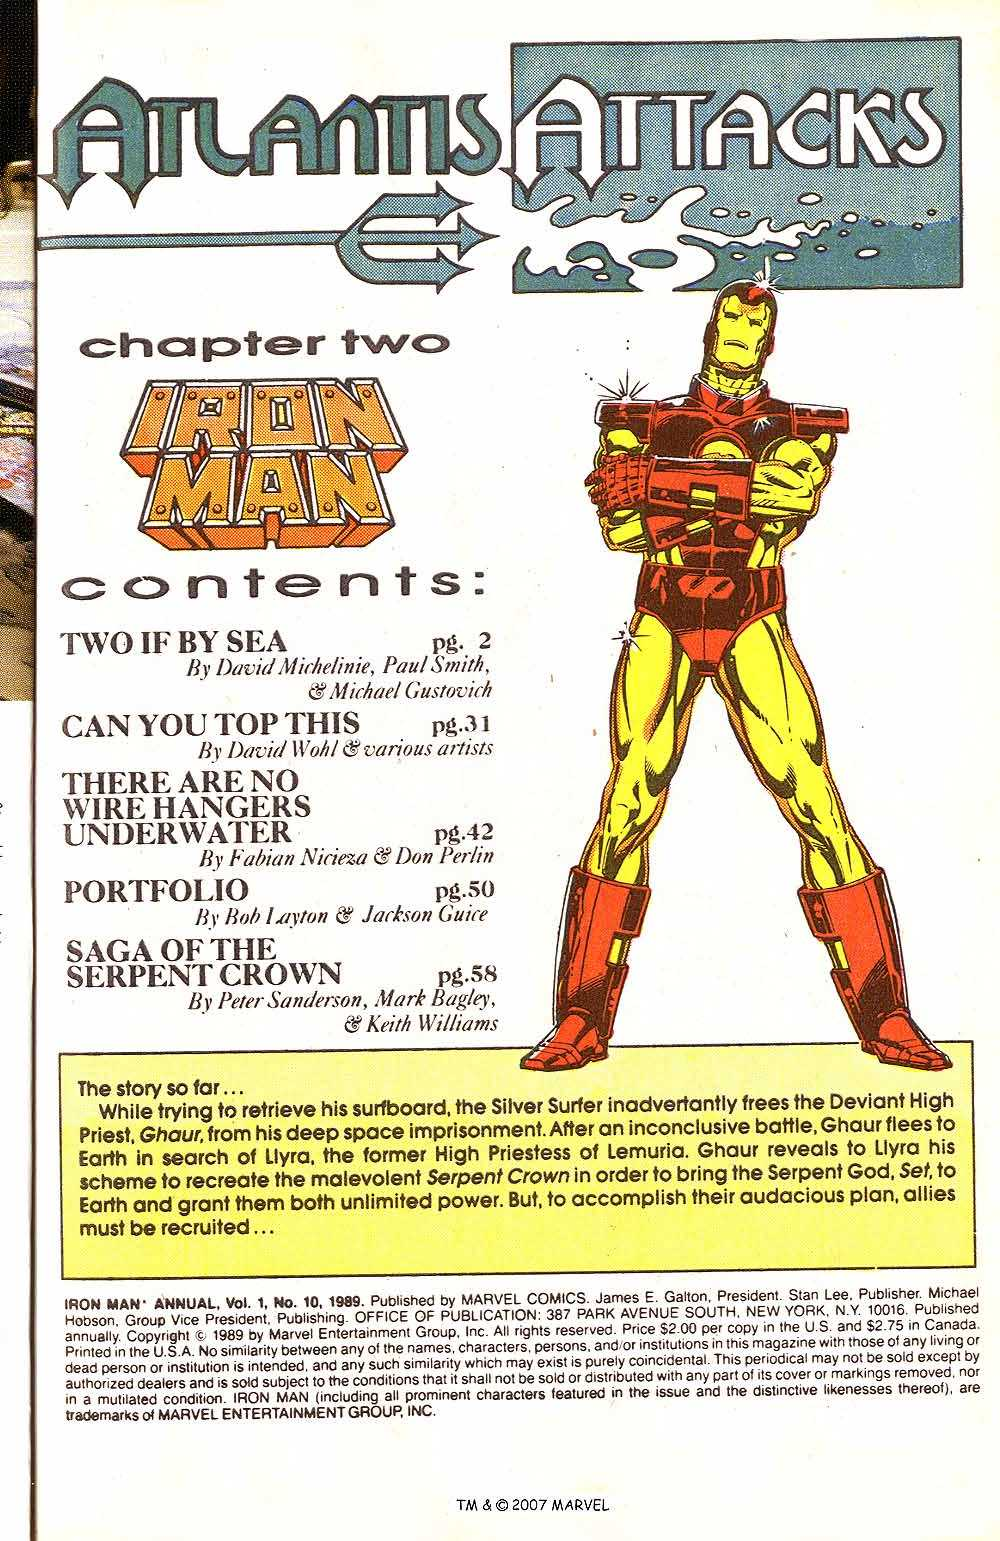 Iron Man Annual 10 Page 3